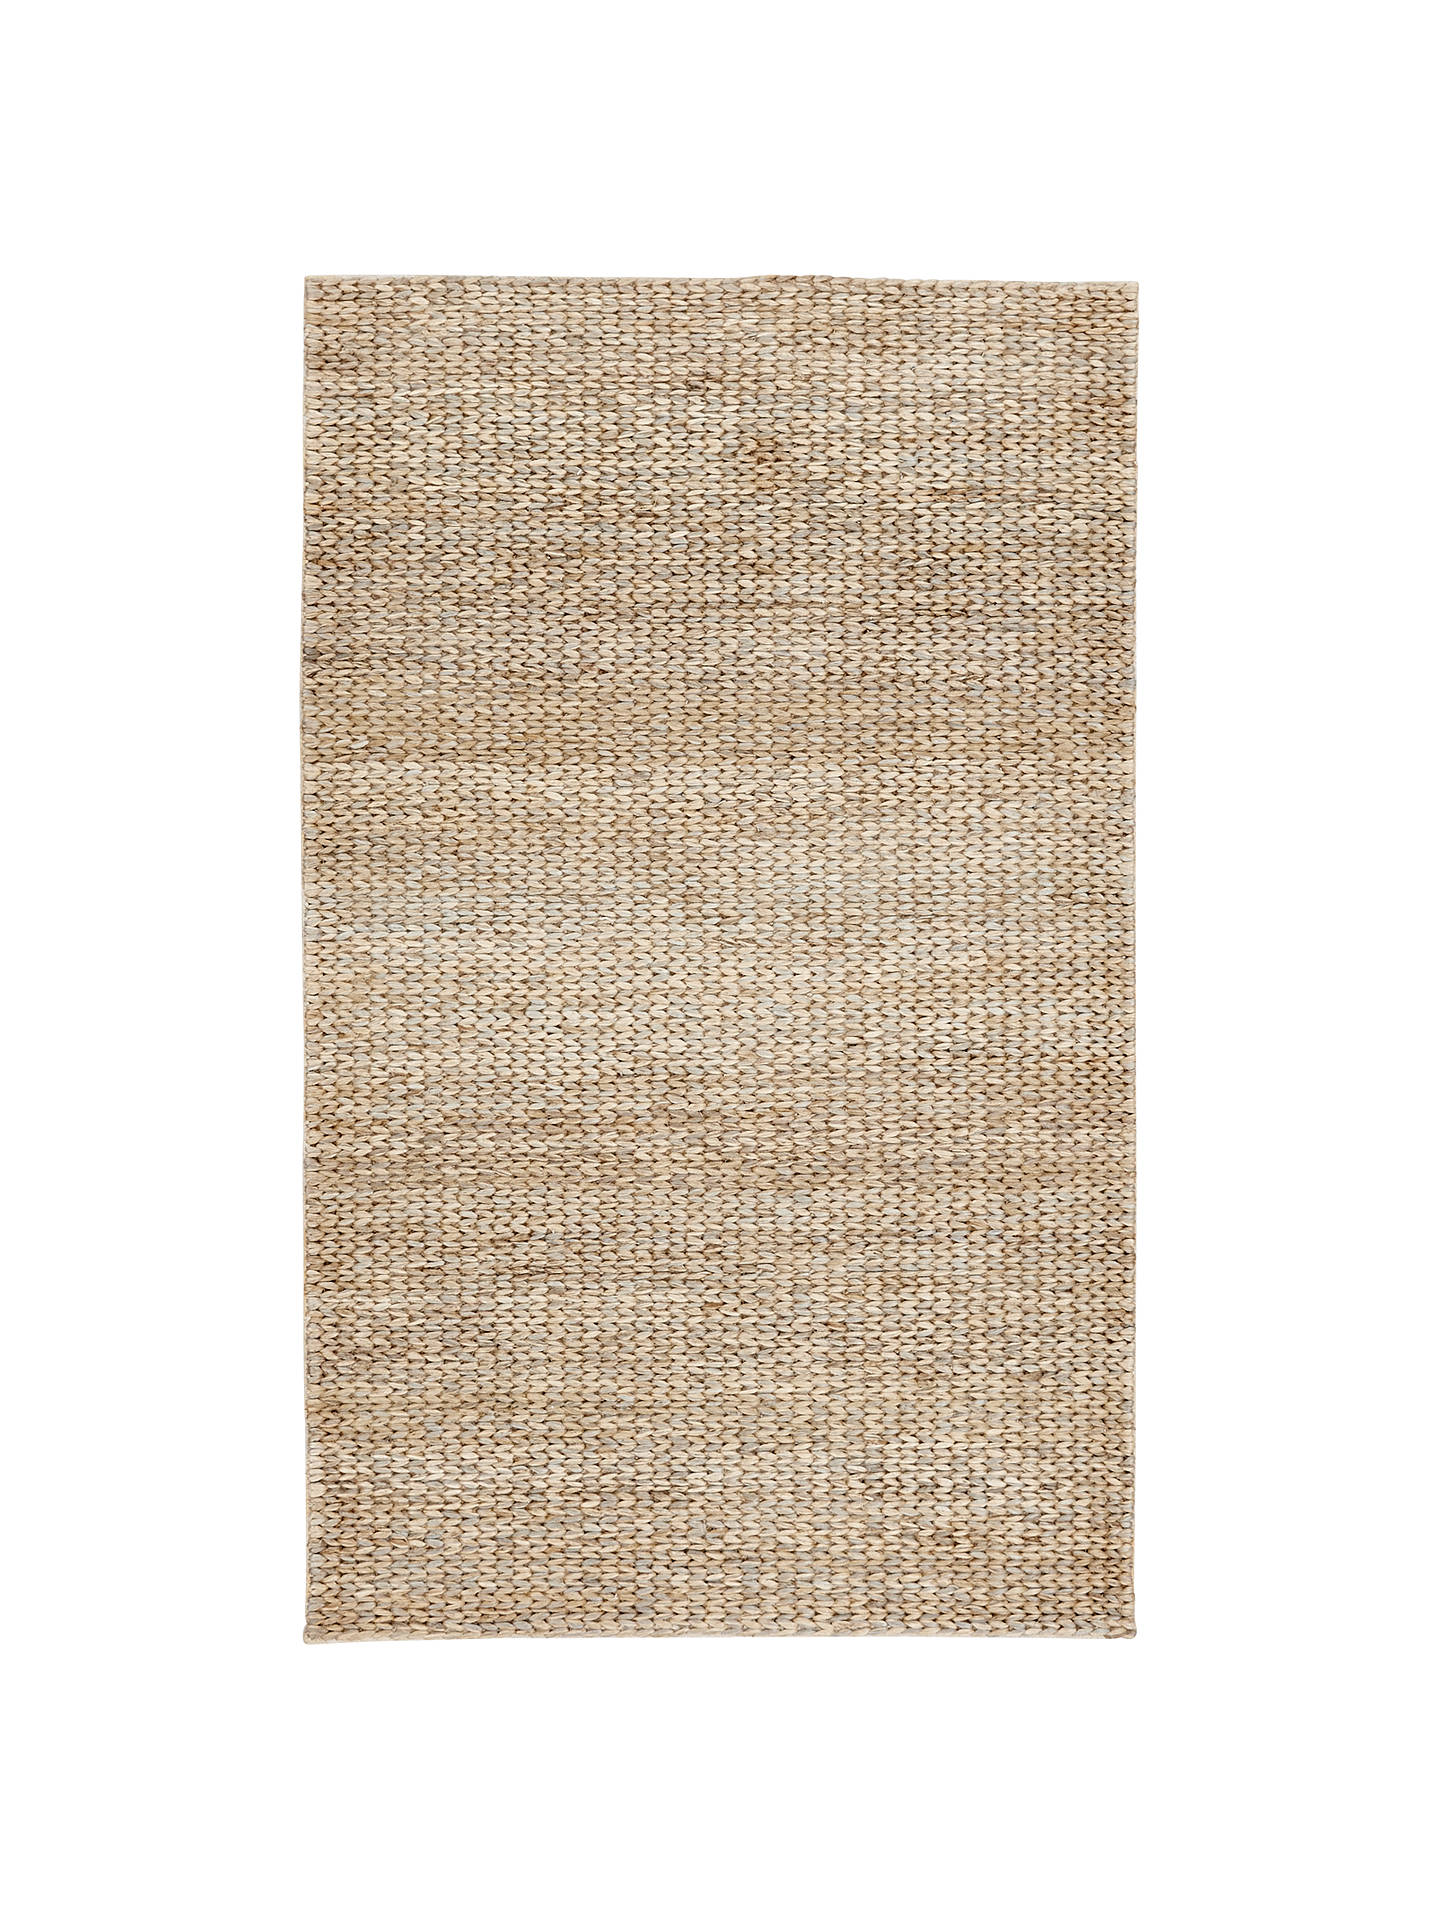 West Elm Tonal Braided Jute Rug Natural At John Lewis Partners